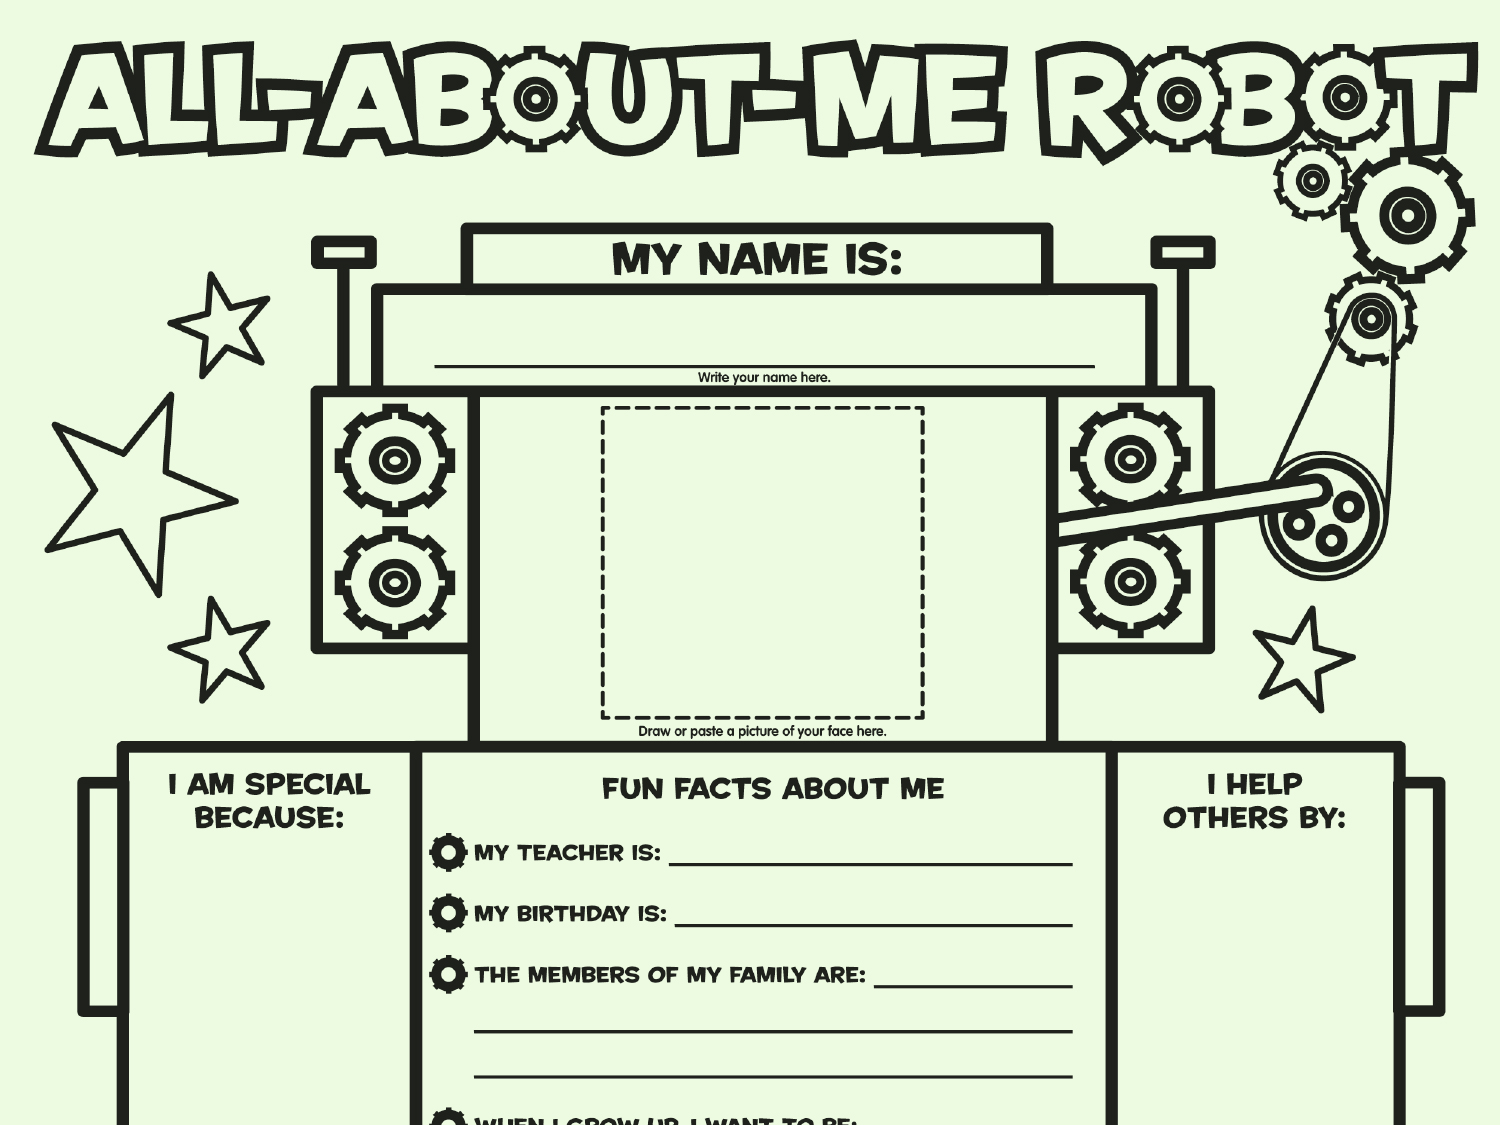 hight resolution of All About Me Robot: Fill-in Poster   Worksheets \u0026 Printables   Scholastic    Parents